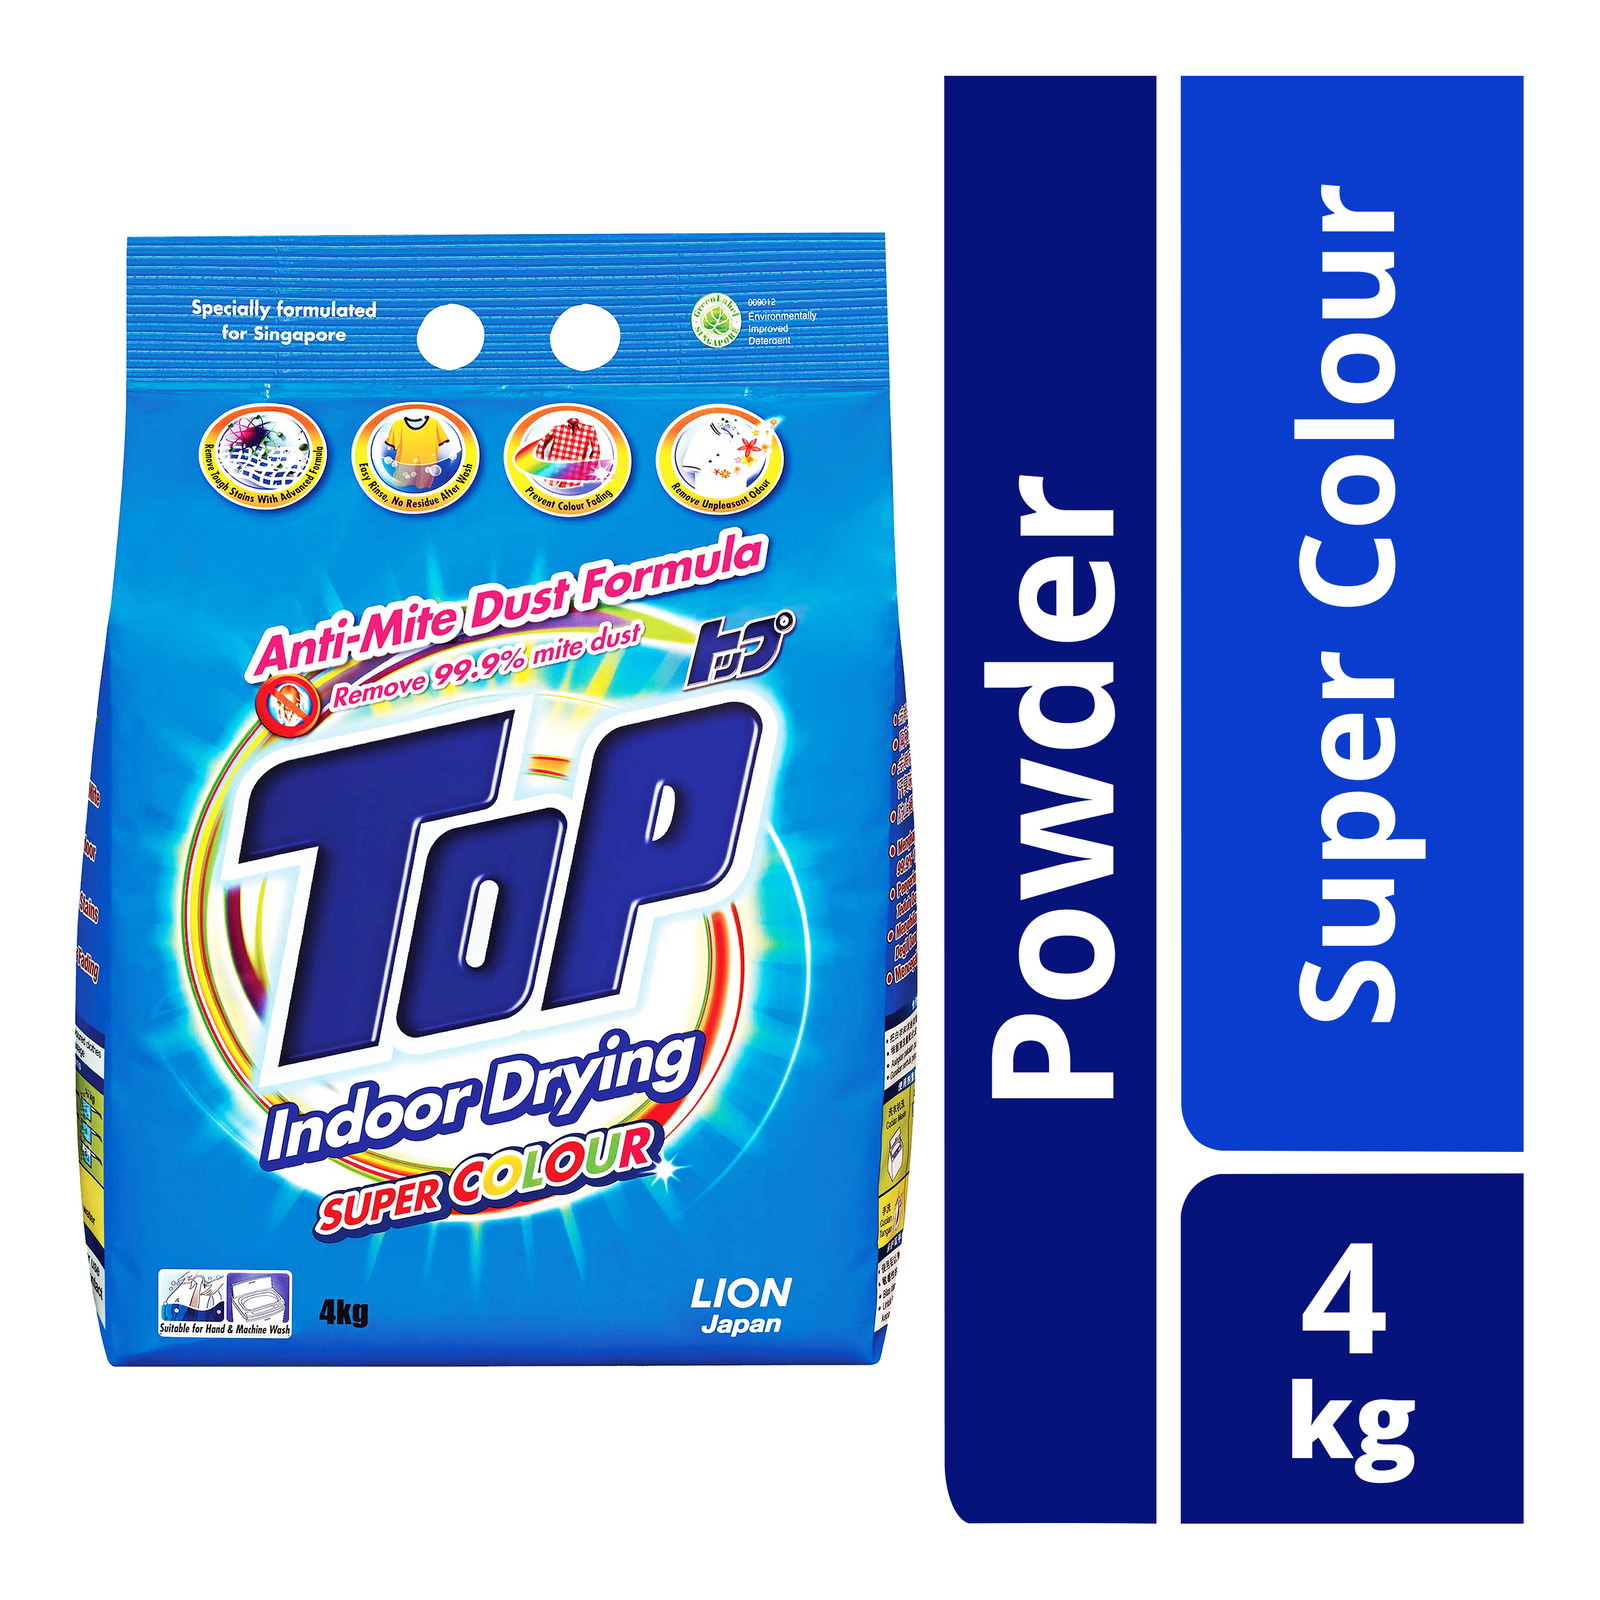 Top Detergent Powder - Super Colour